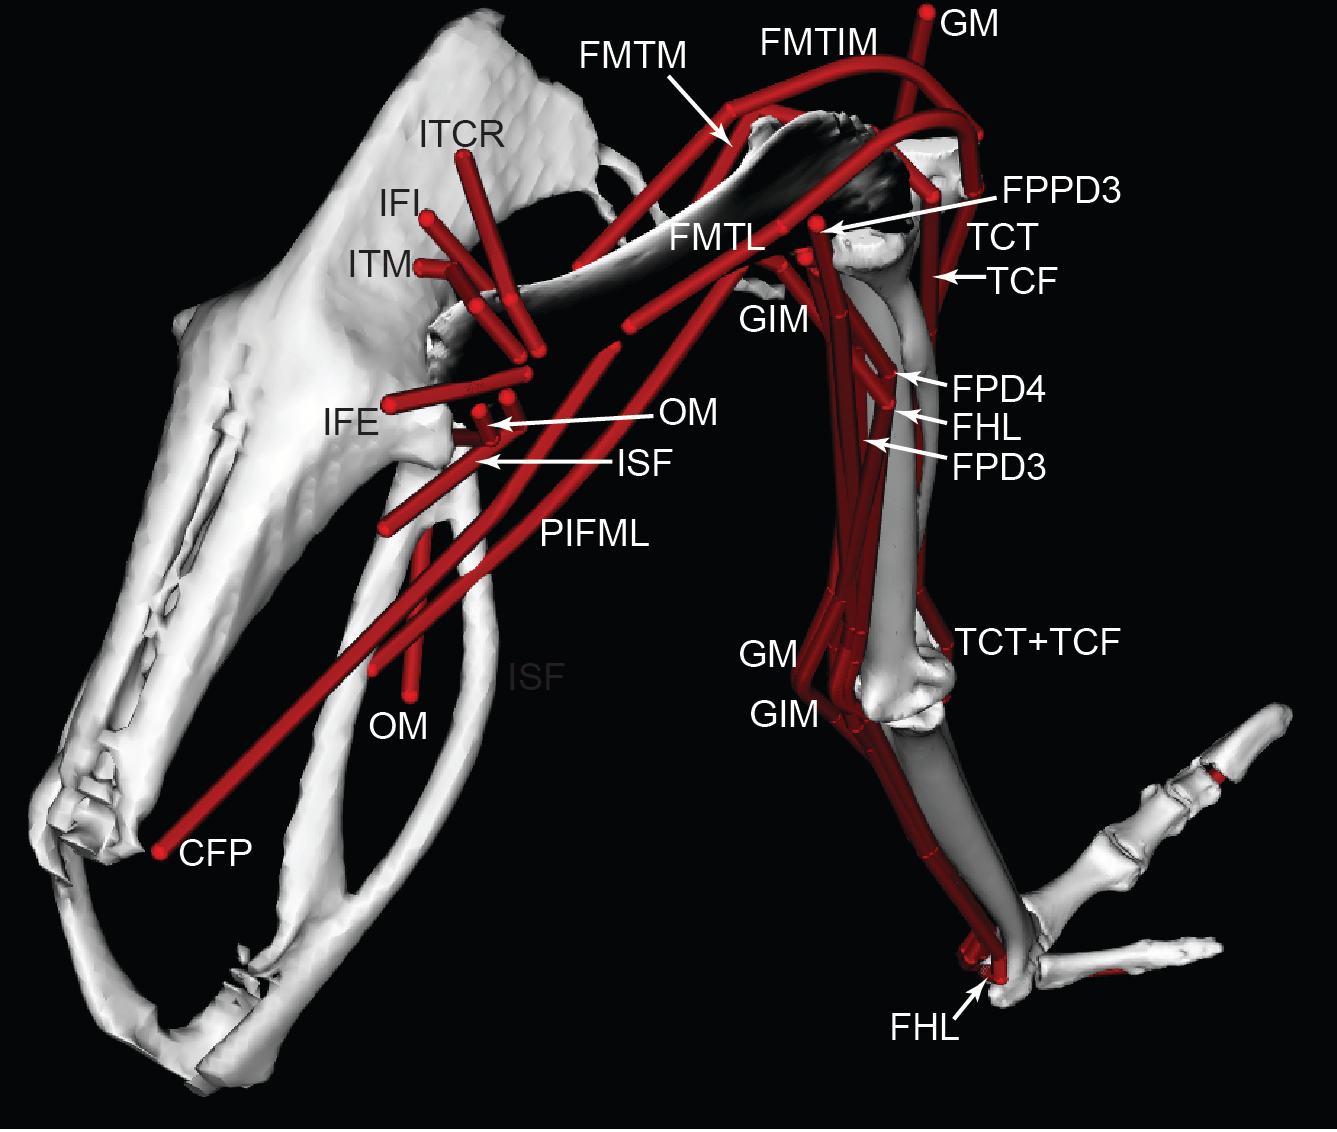 Musculoskeletal Modelling Of An Ostrich Struthio Camelus Pelvic Cat Skeleton Moreover Knee Muscles And Tendons Diagram In Addition Download Full Size Image